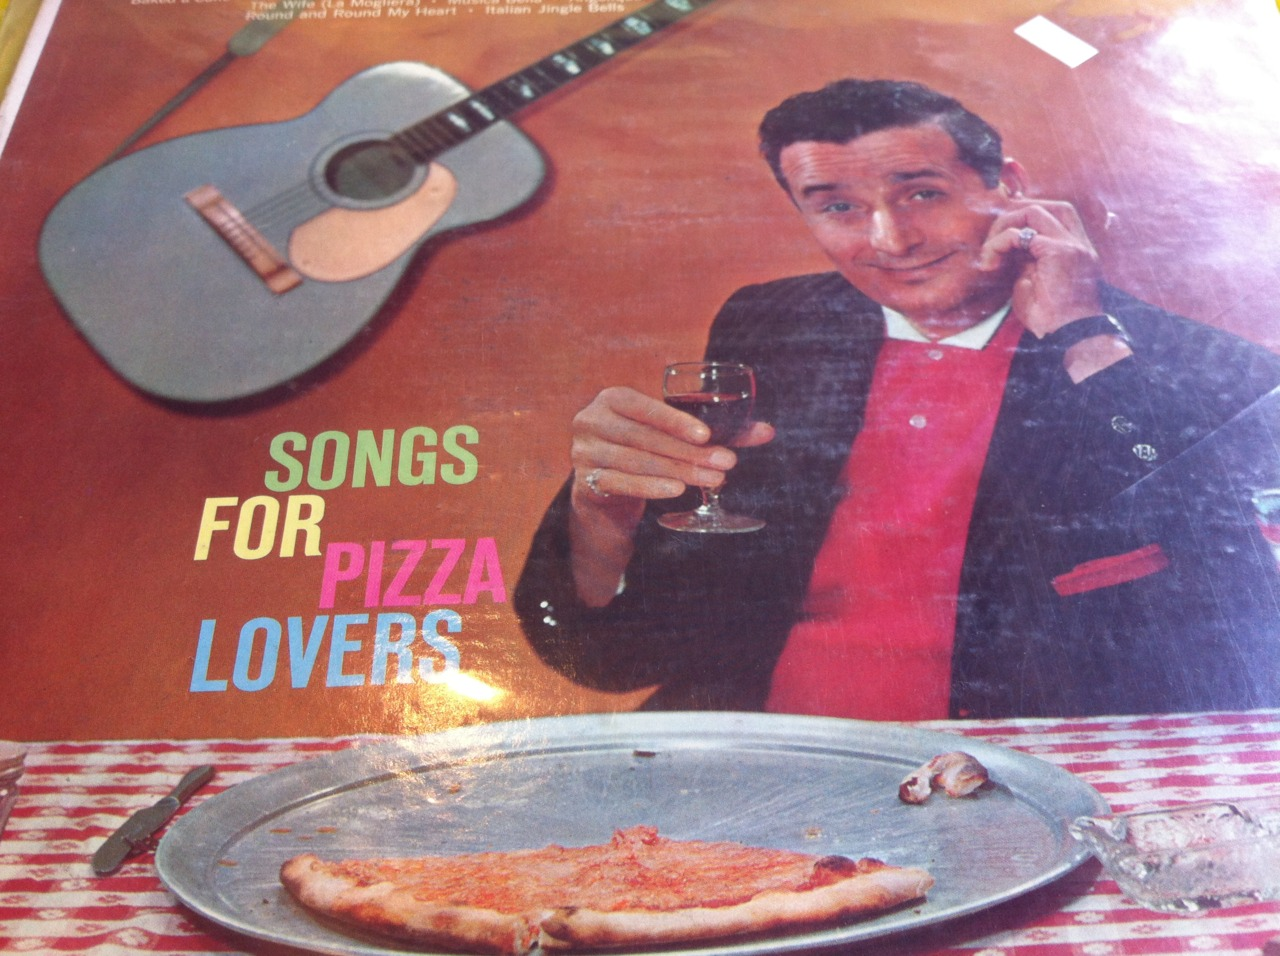 "I haven't listened to much of this record yet, but it has such classics as ""If I knew You Were Coming I'd Have Baked You a Cake."" In this instance, ""cake"" must mean pizza. A pizza cake. Exactly the type of thing I want served at my funeral. This guy on the front seems to enjoy pizza so much that he's eaten most of it before the camera crew could get a slice. This is before unions so no one was allowed to intervene on the pizza slaughter. It's a shame that there's a piece of crust left behind. A pizza lover would eat the entire pizza, crust and all. Kind of makes me think this might just be a marketing ploy to sucker in pizza enthusiast.  I'll make some pizza and listen to the record and write a review of the songs. Who knows, maybe it'll inspire me to write my own pizza lyrics. Lyrics that, if listened to in reverse, reveal my deepest pizza secrets."